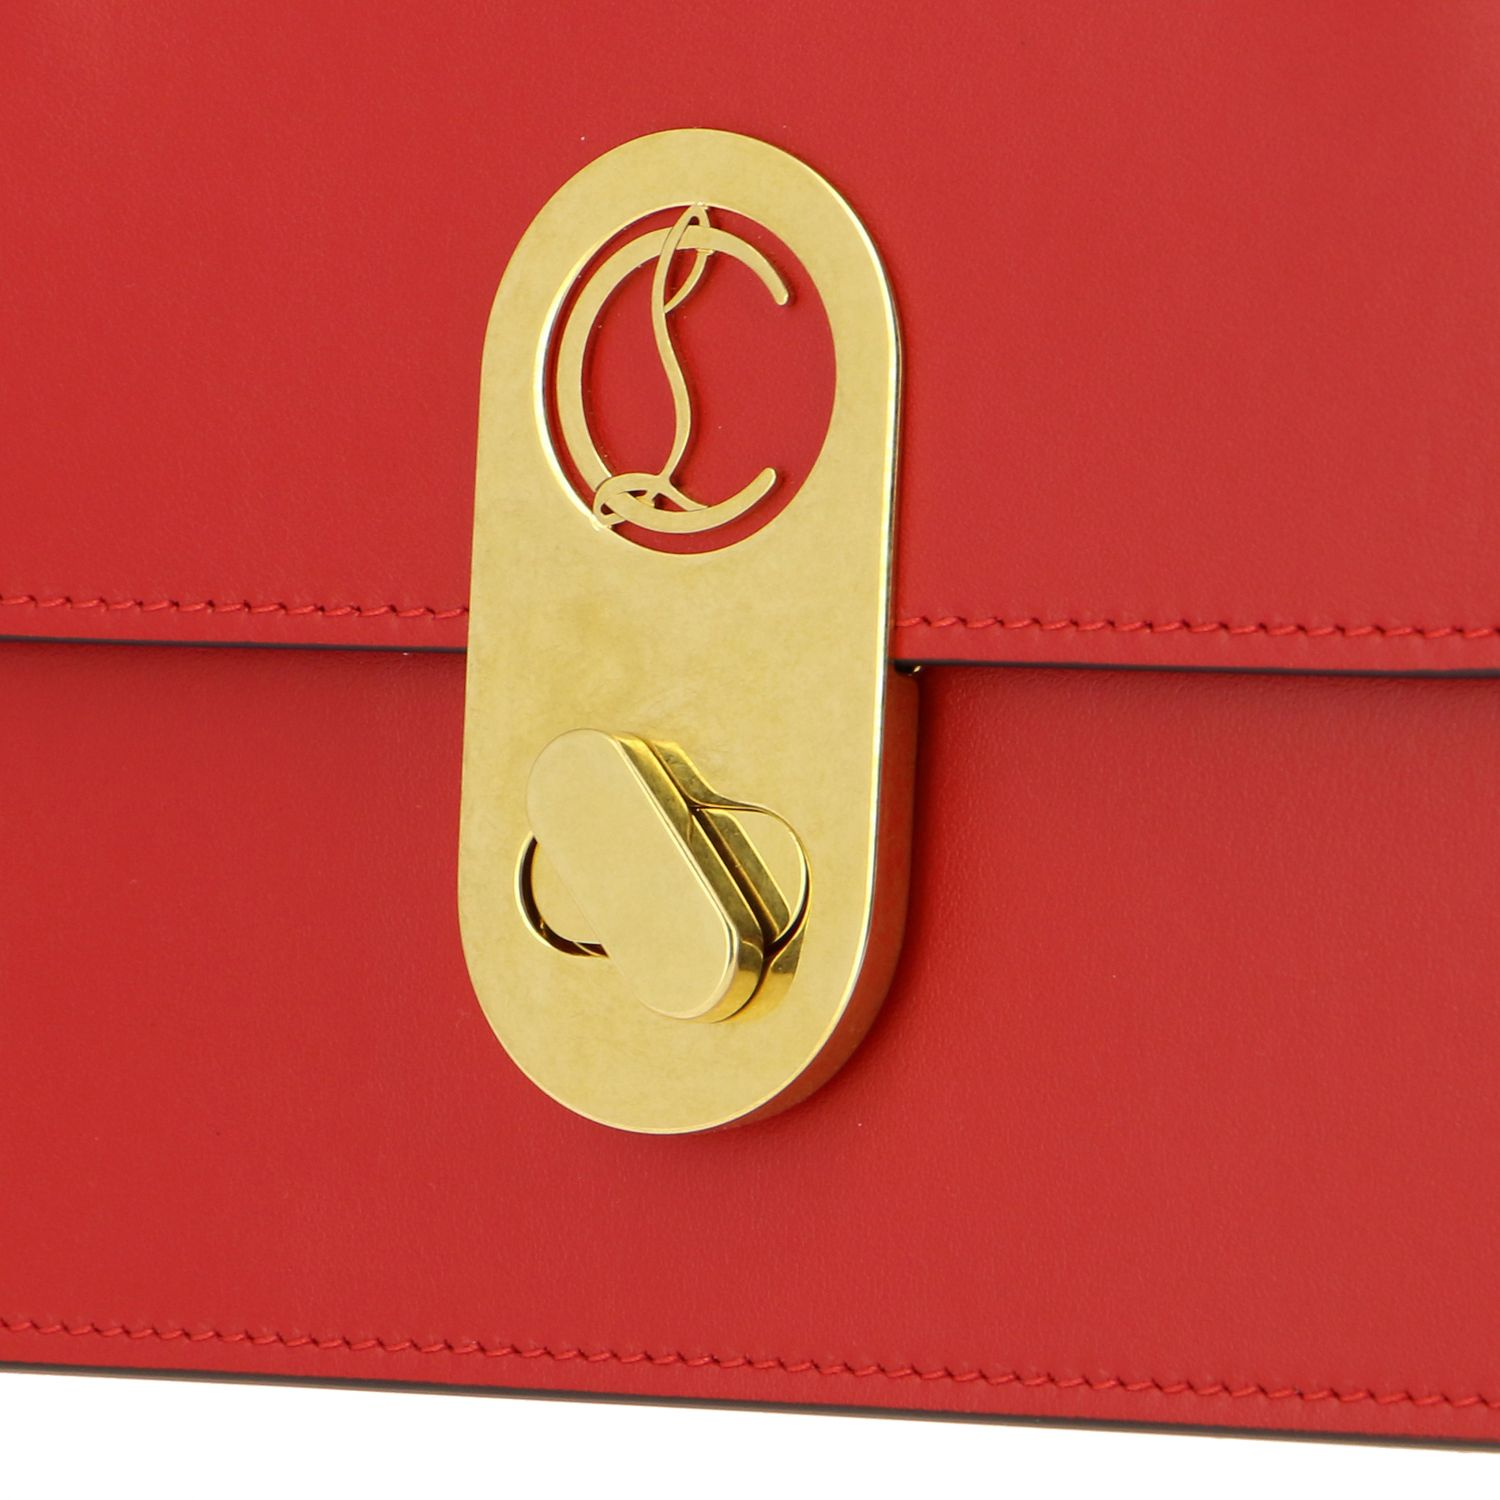 Elisa Christian Louboutin leather bag red 4